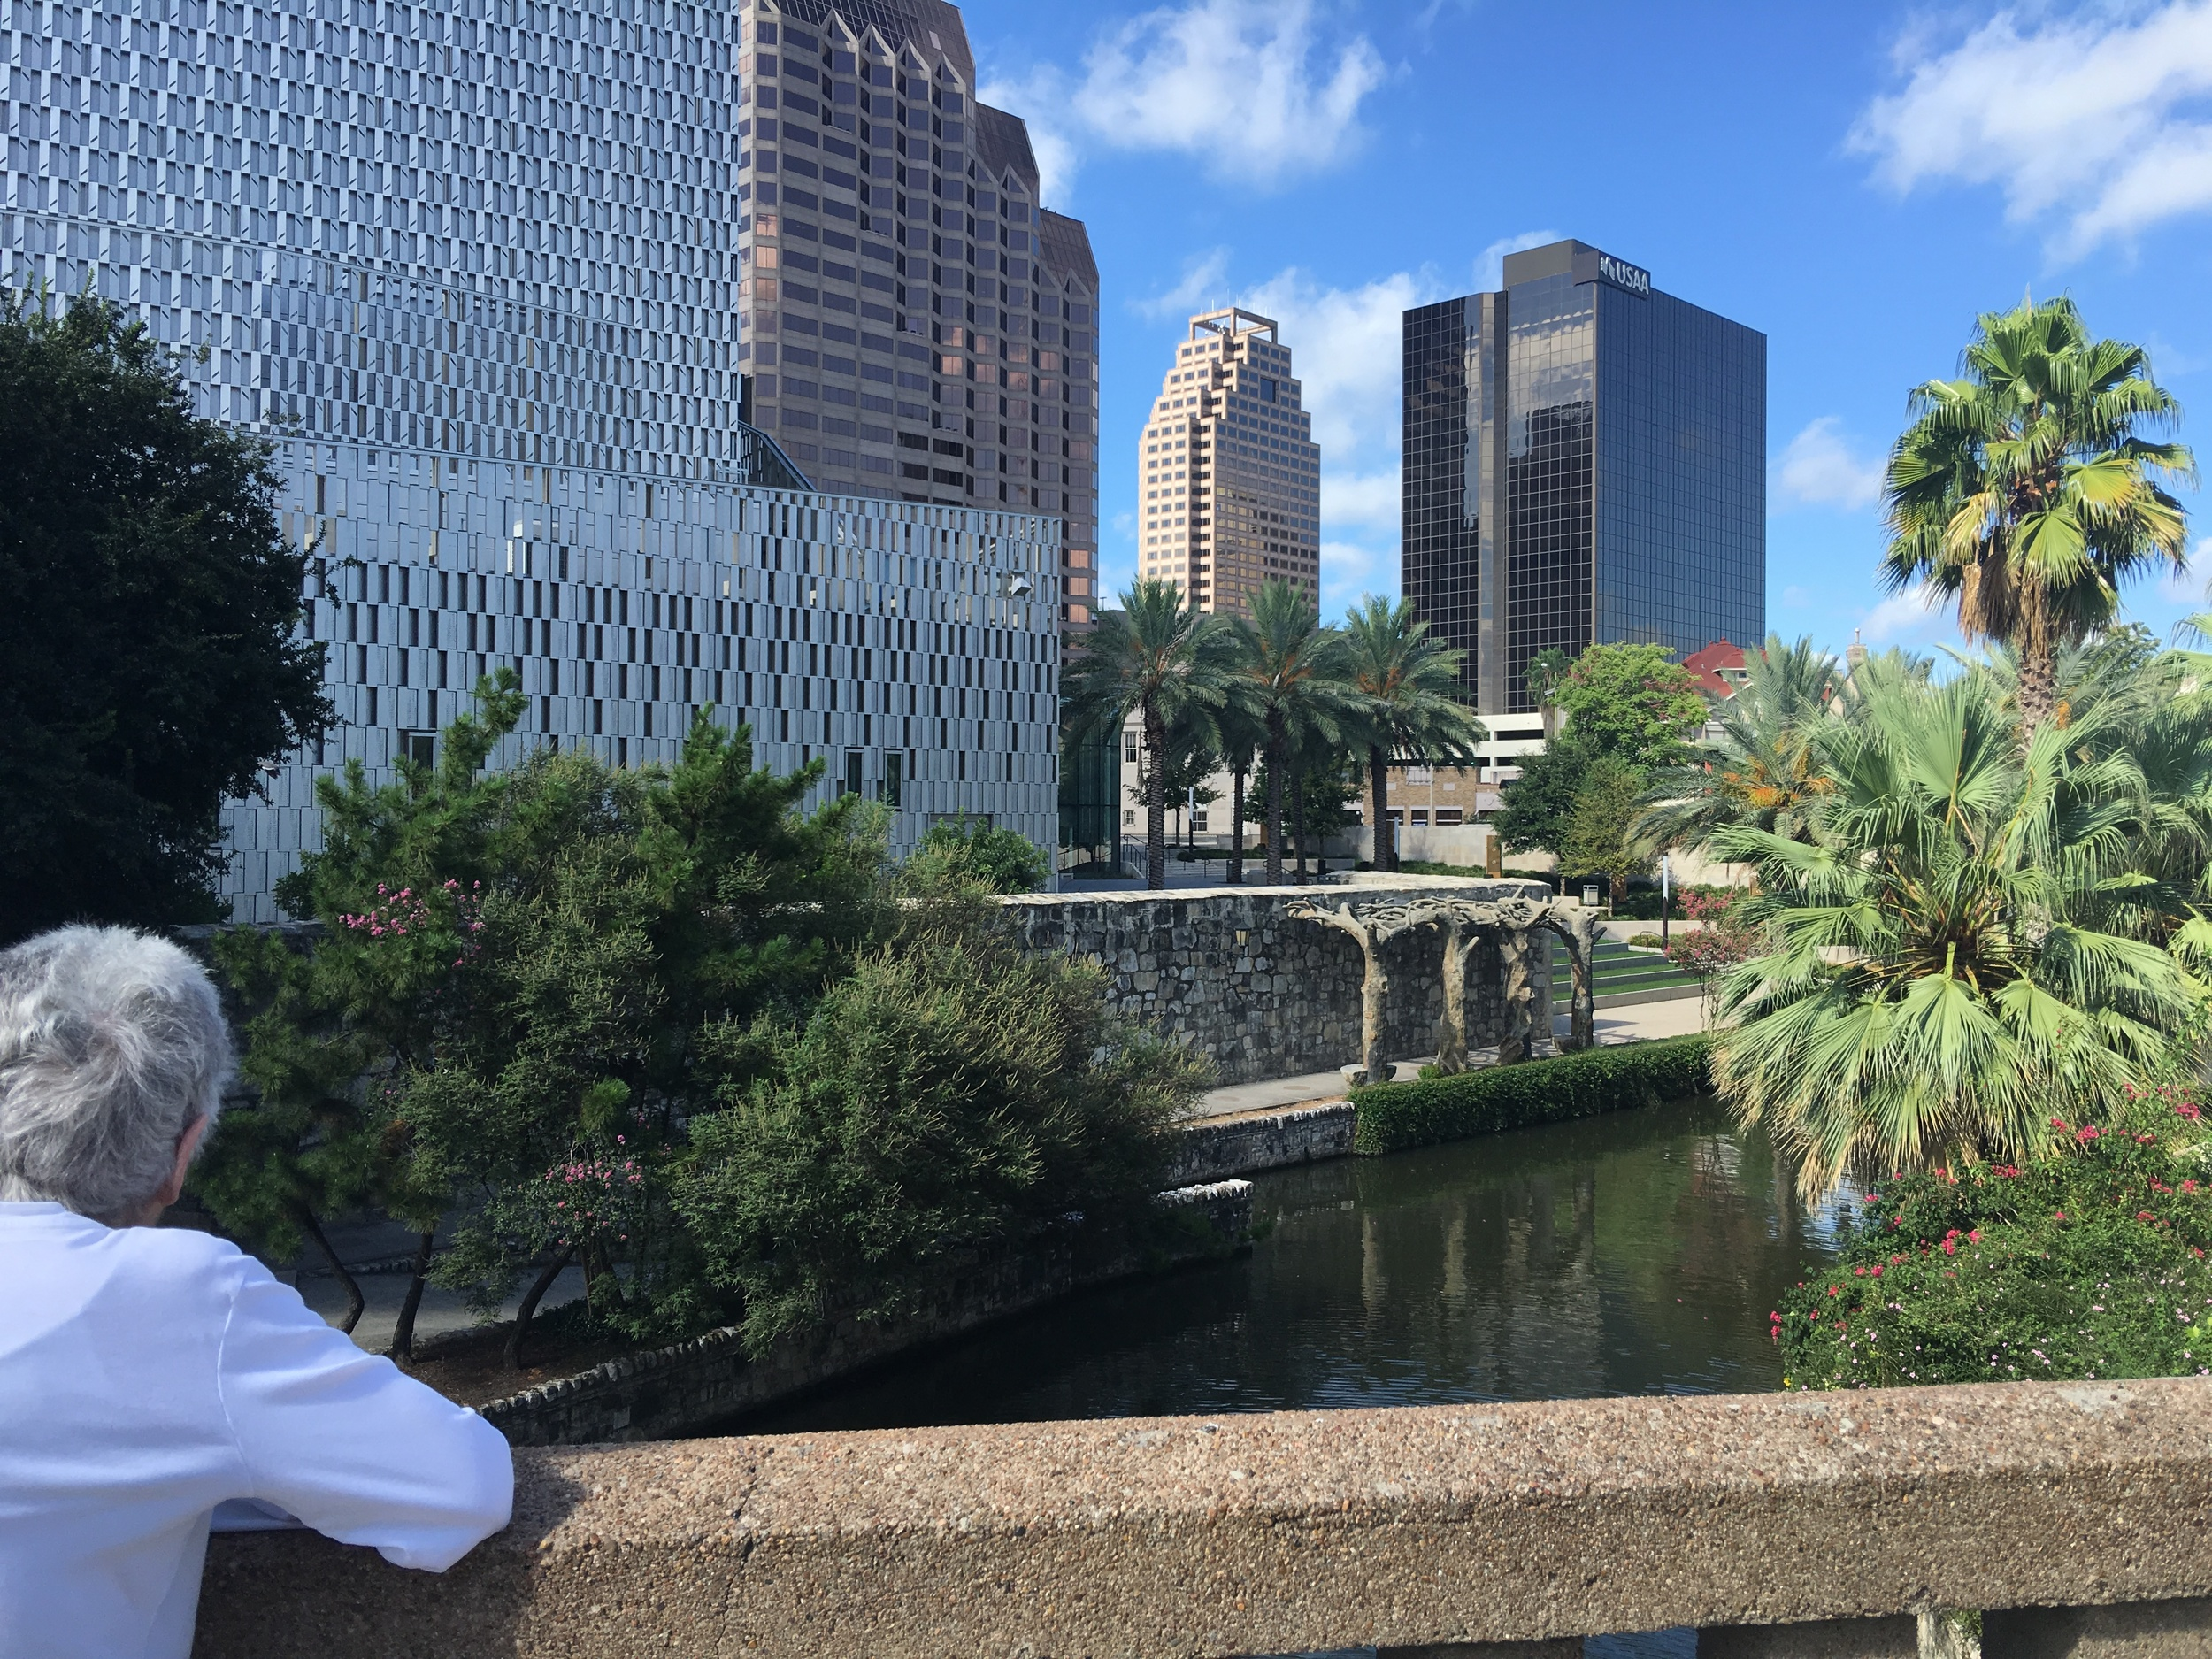 Marcia on the Riverwalk overlooking the Tobin Center for the Performing Arts & SA skyline